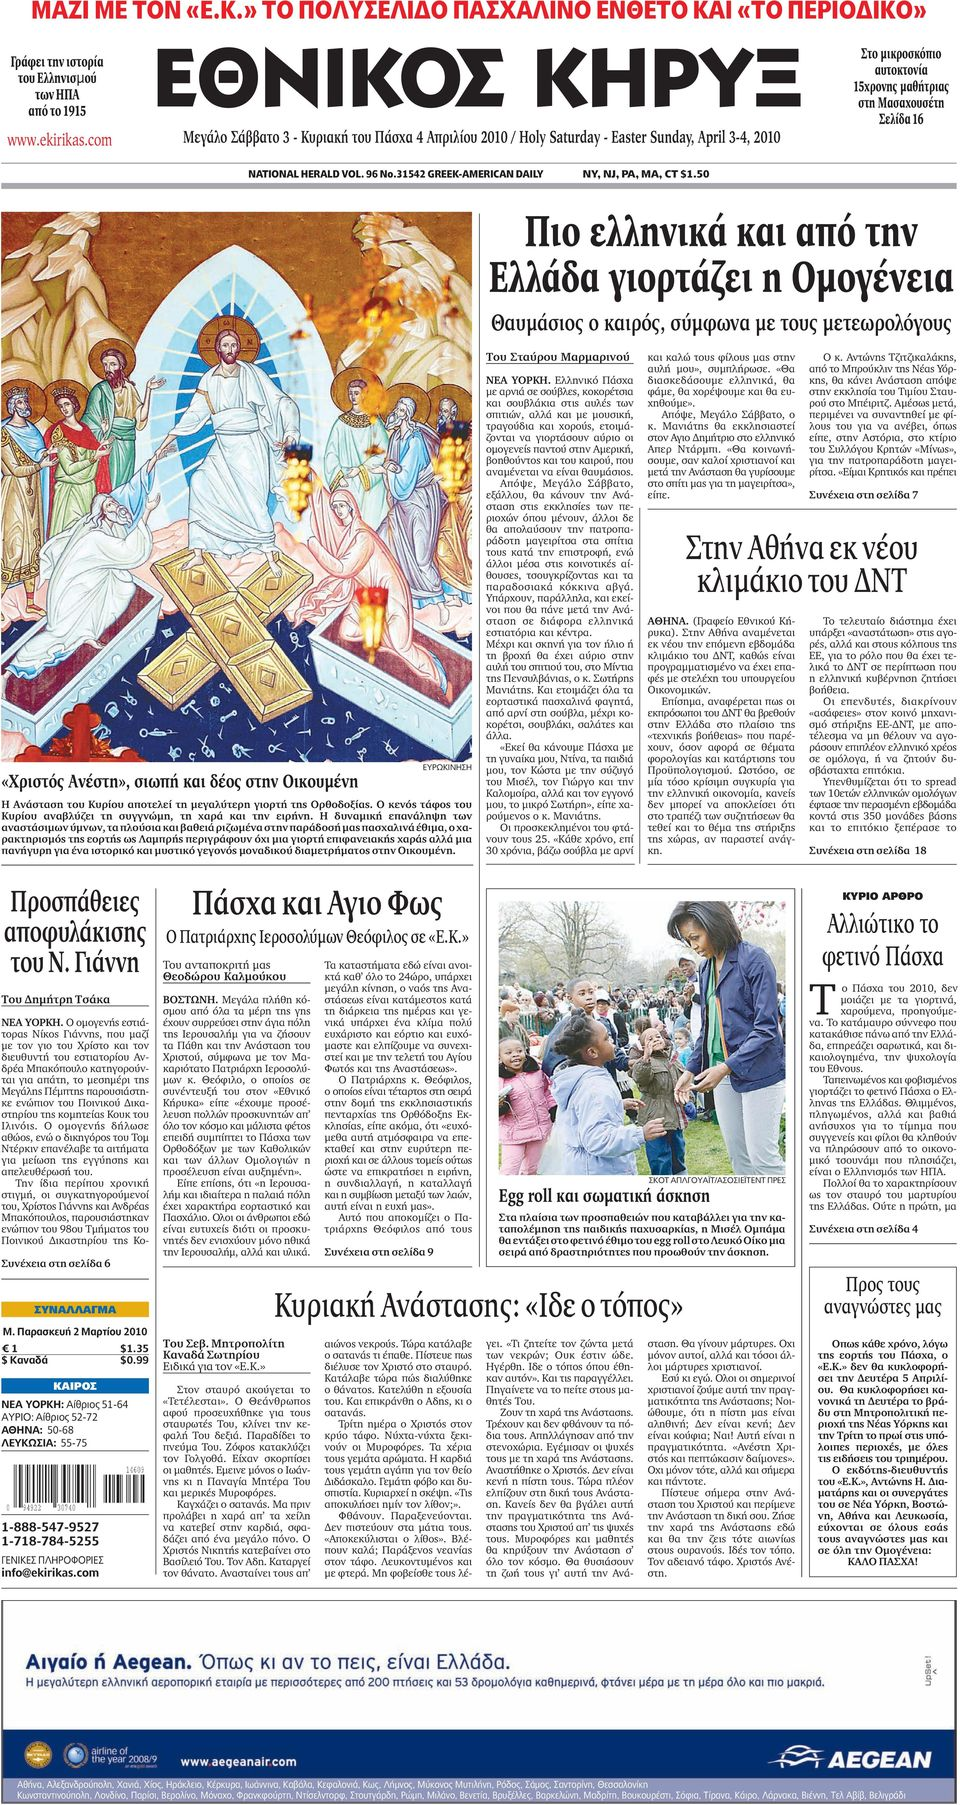 96 no.31542 GReeK-aMeRiCan DaiLY ny, nj, Pa, Ma, Ct $1.